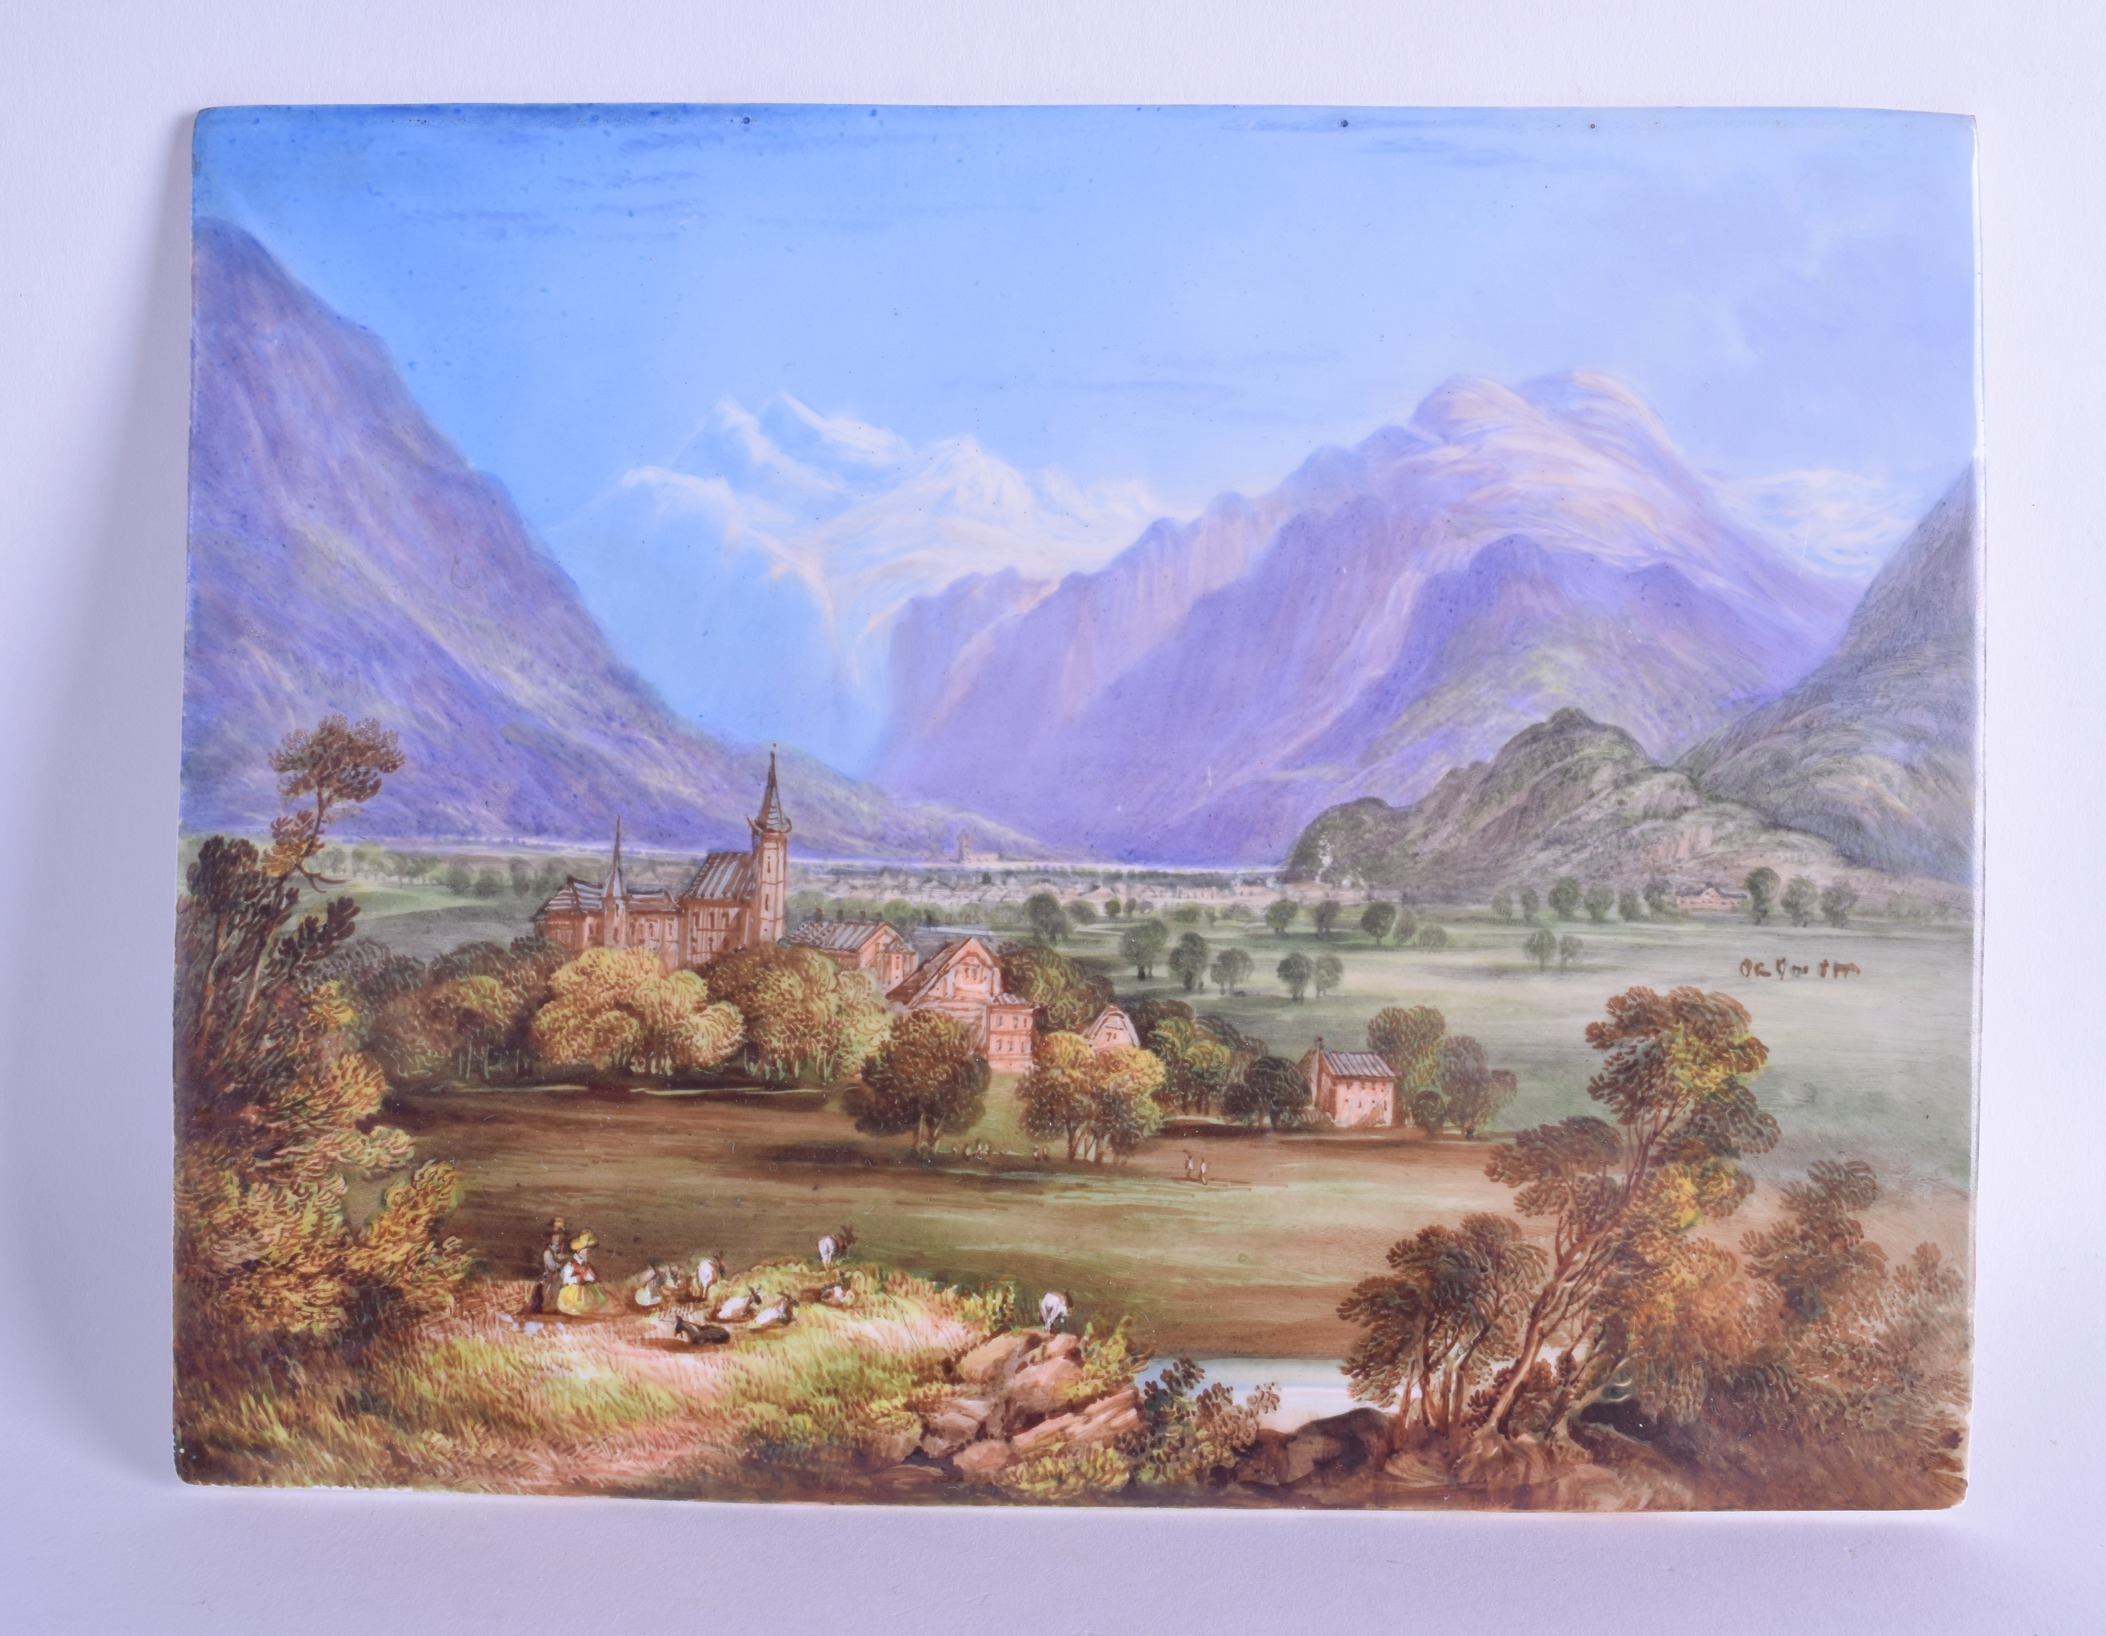 Lot 163 - Mid 19th c. English porcelain plaque, probably Davenport painted with a titled scene of 'Interlacken